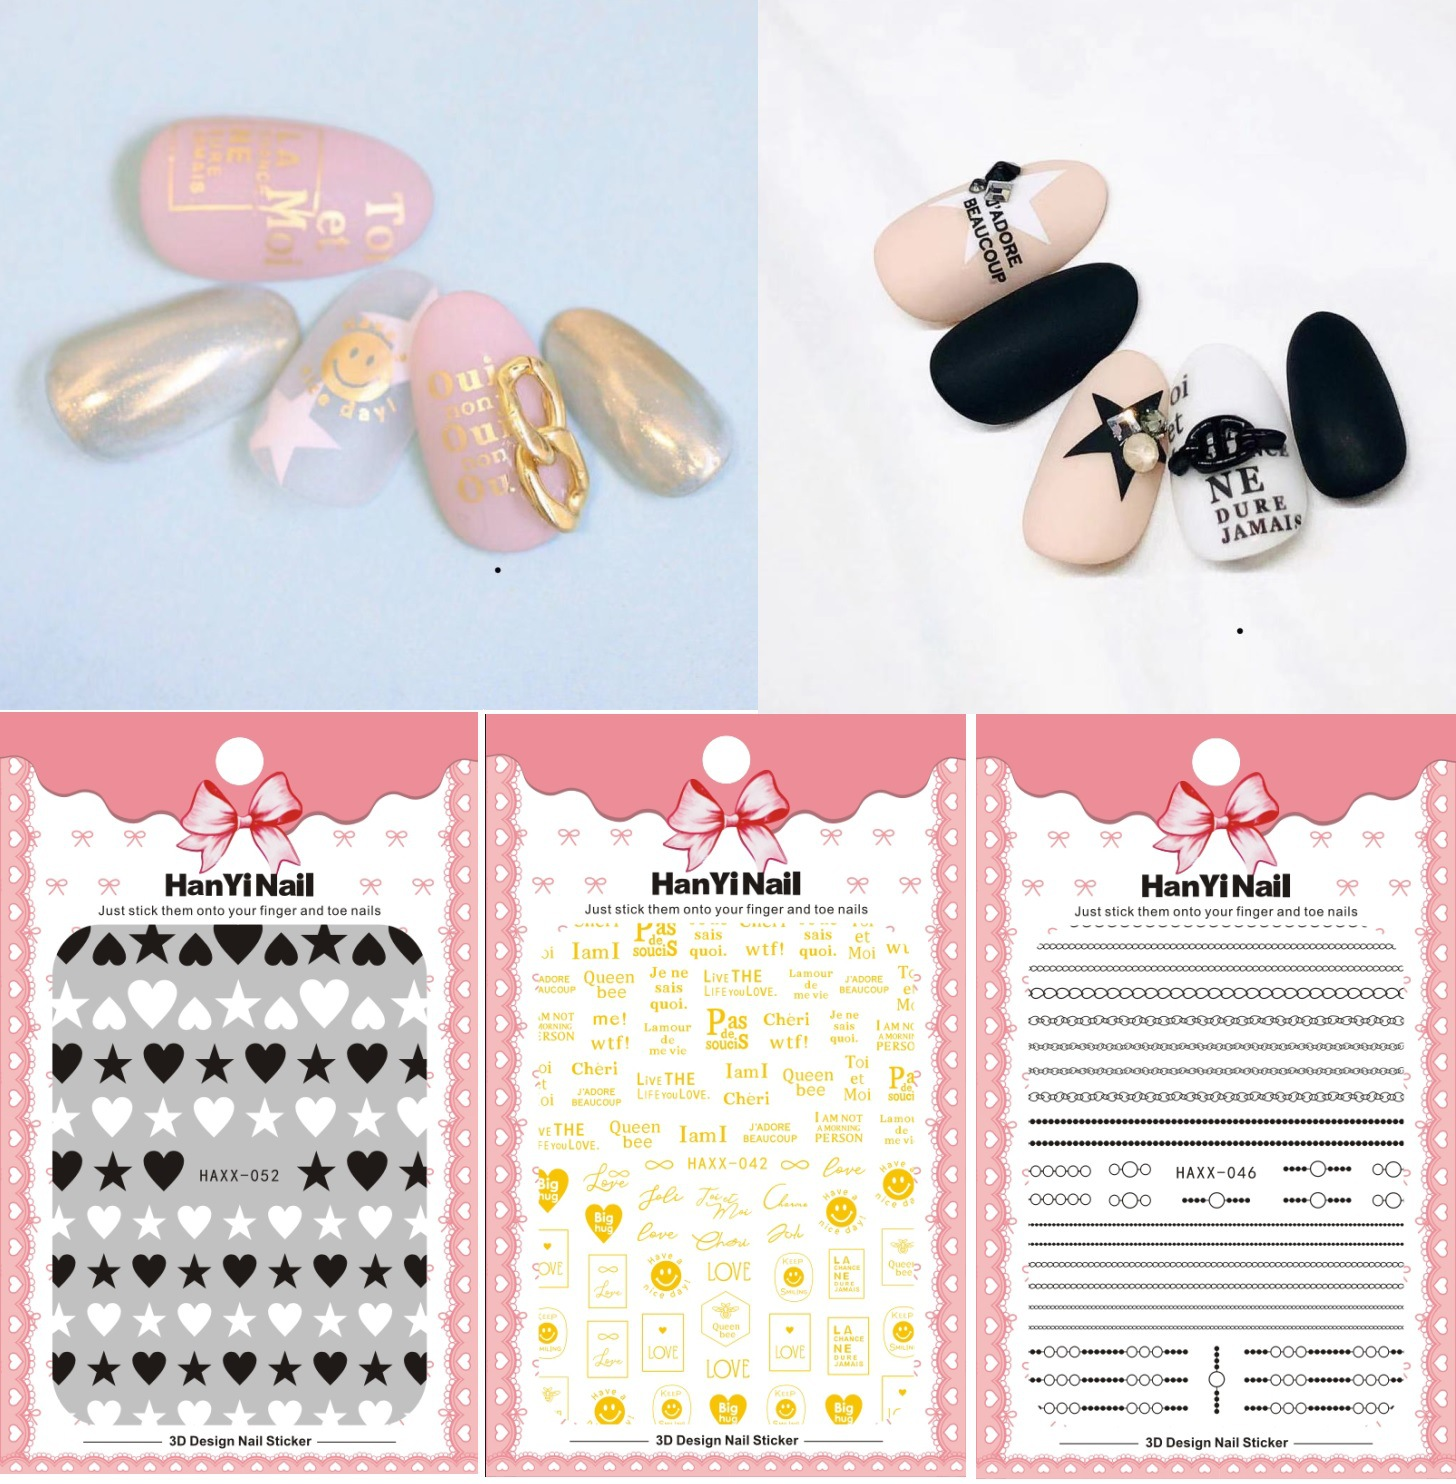 Japanese-style Official Website Celebrity Style 3D Nail Decals With Gum Nail Sticker Polka Dot Heart Haxx40-53